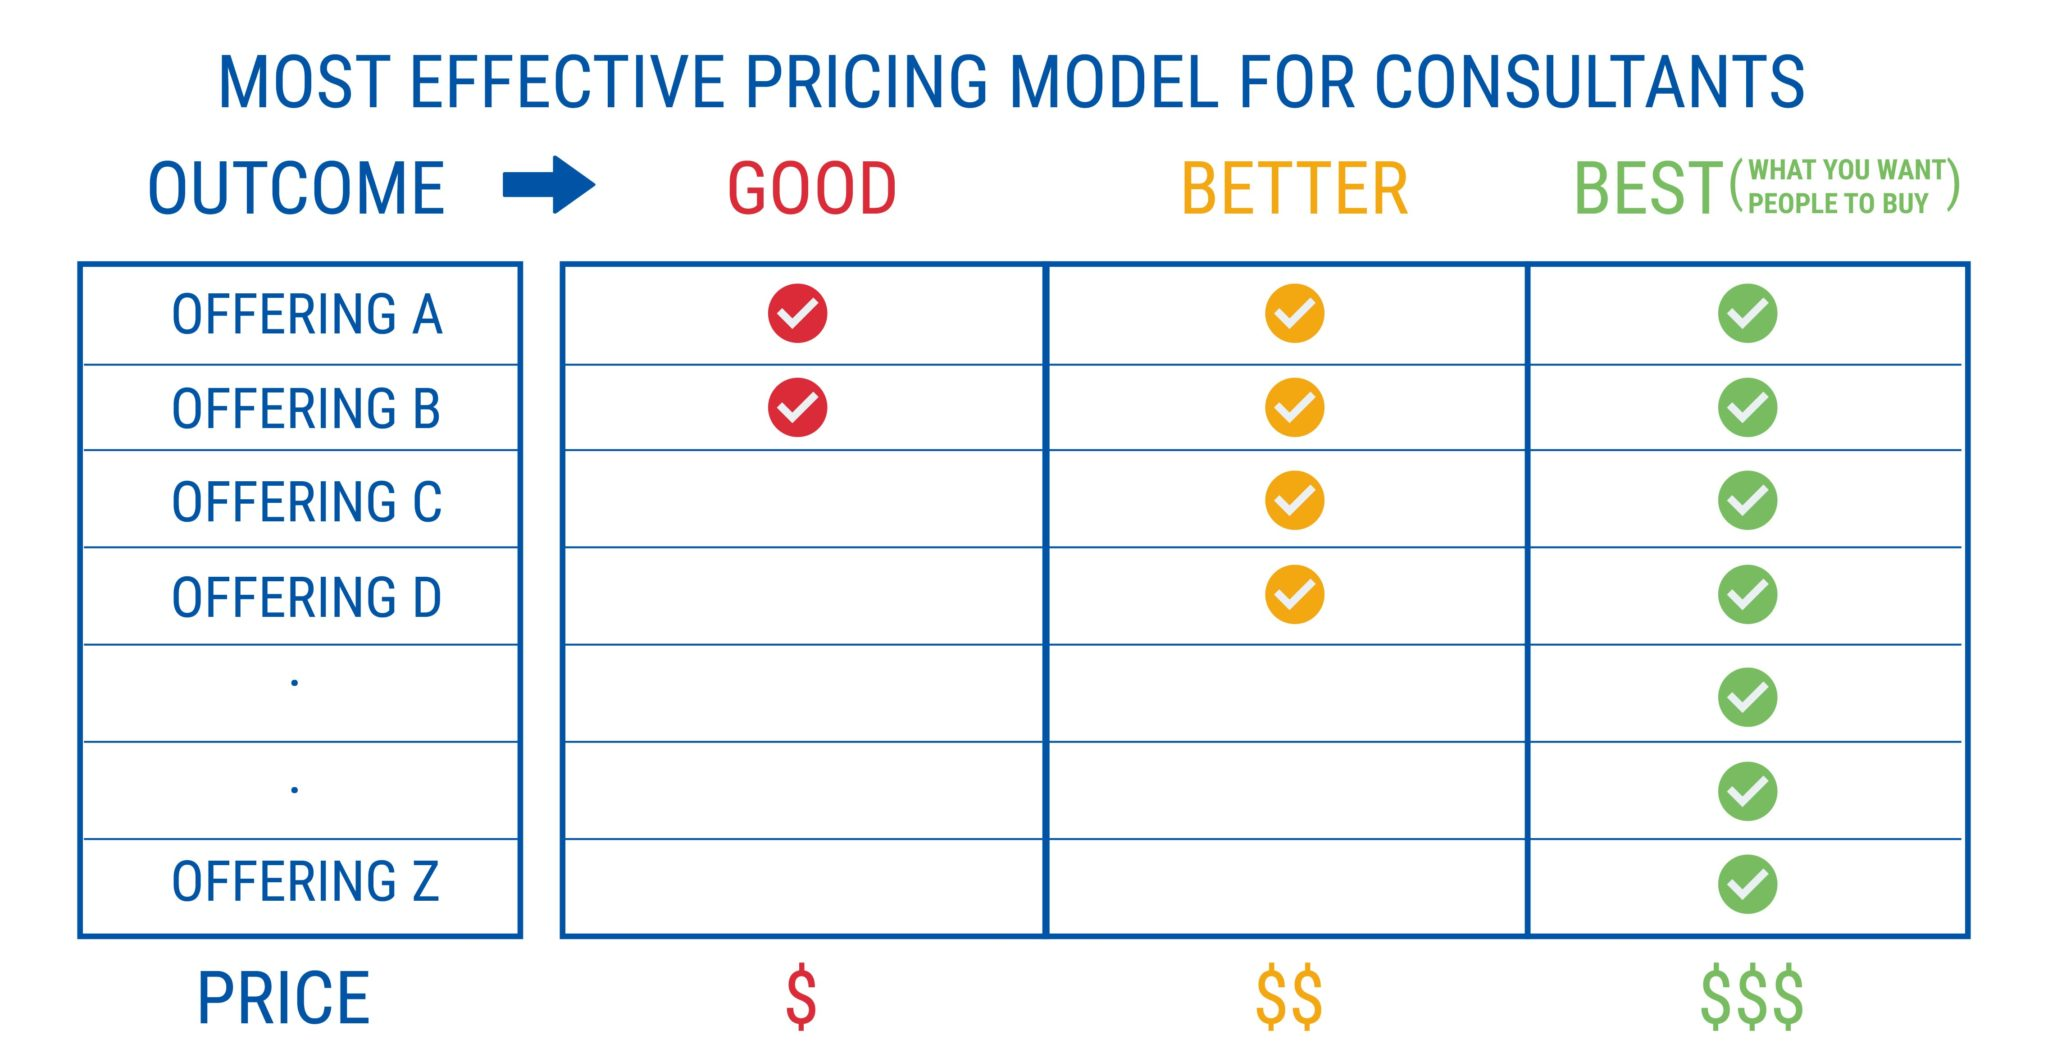 MOST EFFECTIVE PRICING MODEL FOR CONSULTANTS